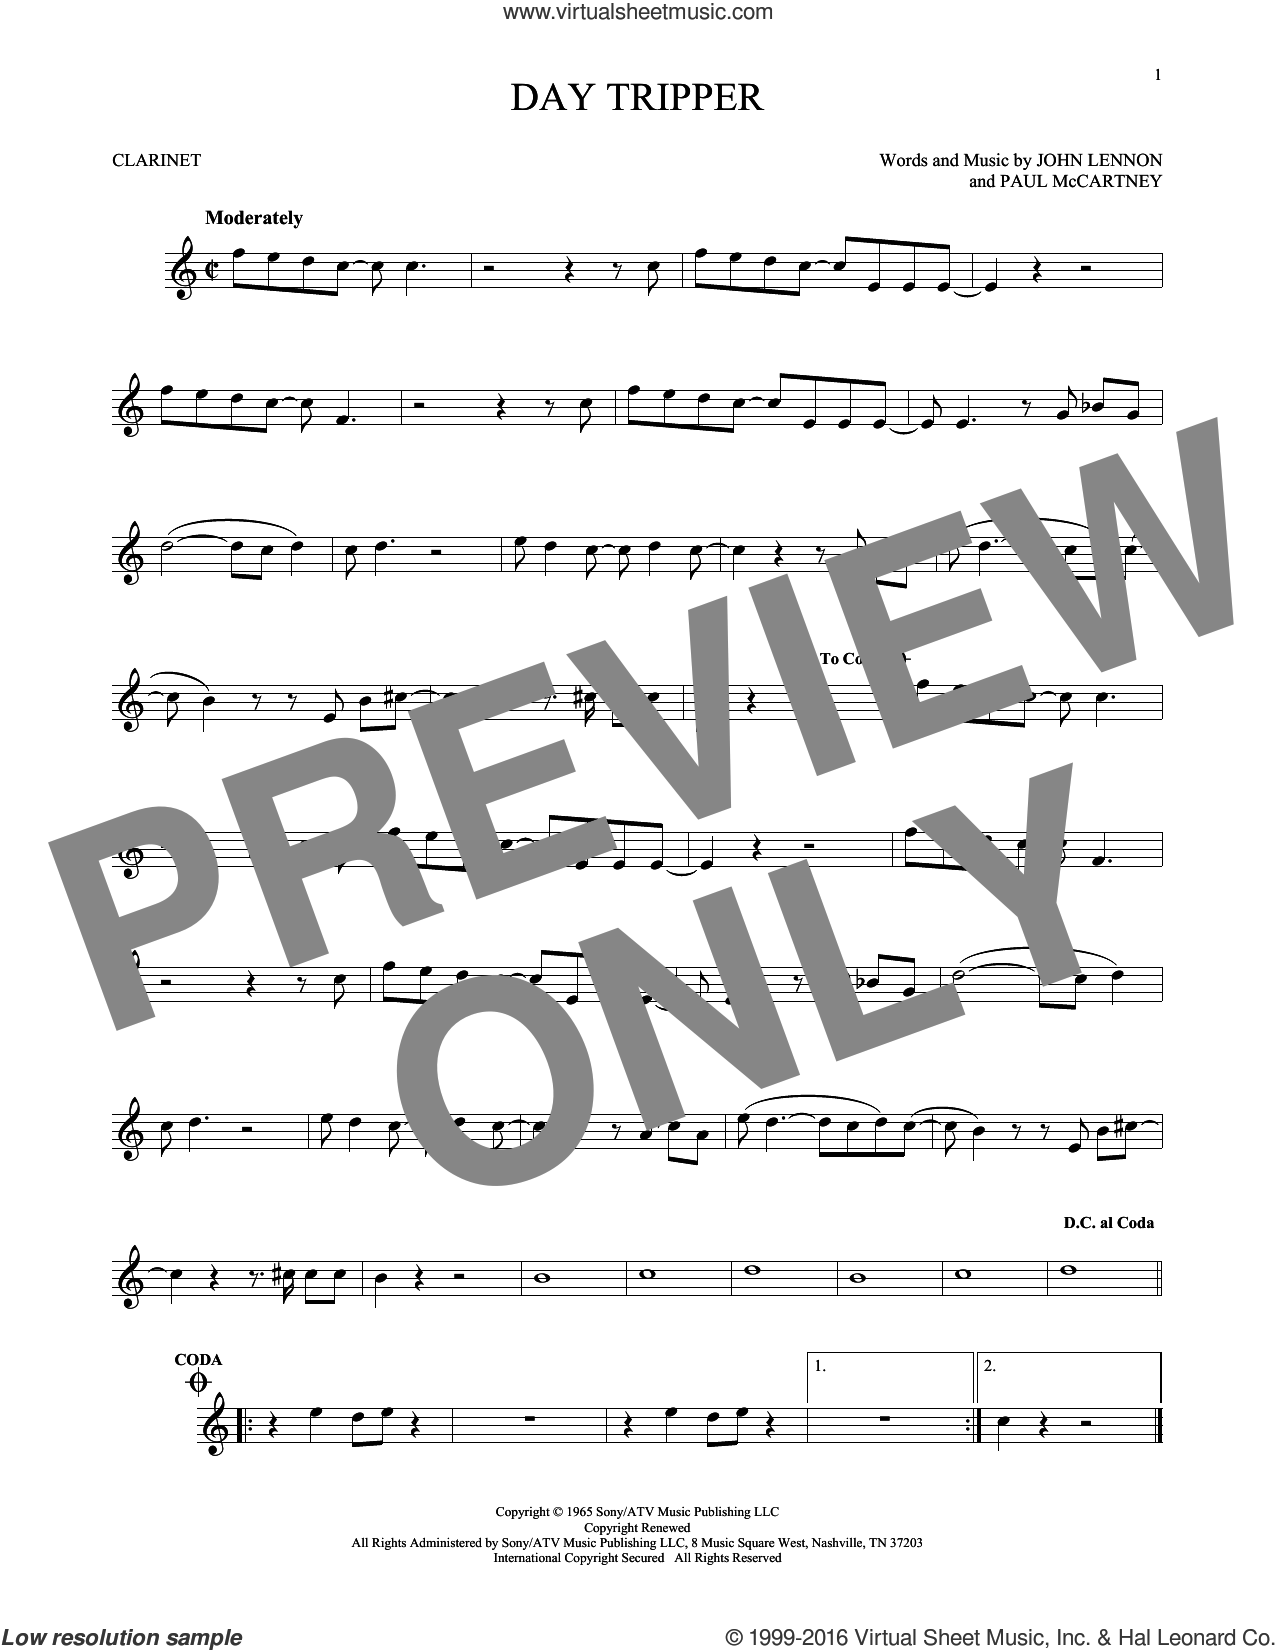 Day Tripper sheet music for clarinet solo by The Beatles, John Lennon and Paul McCartney, intermediate